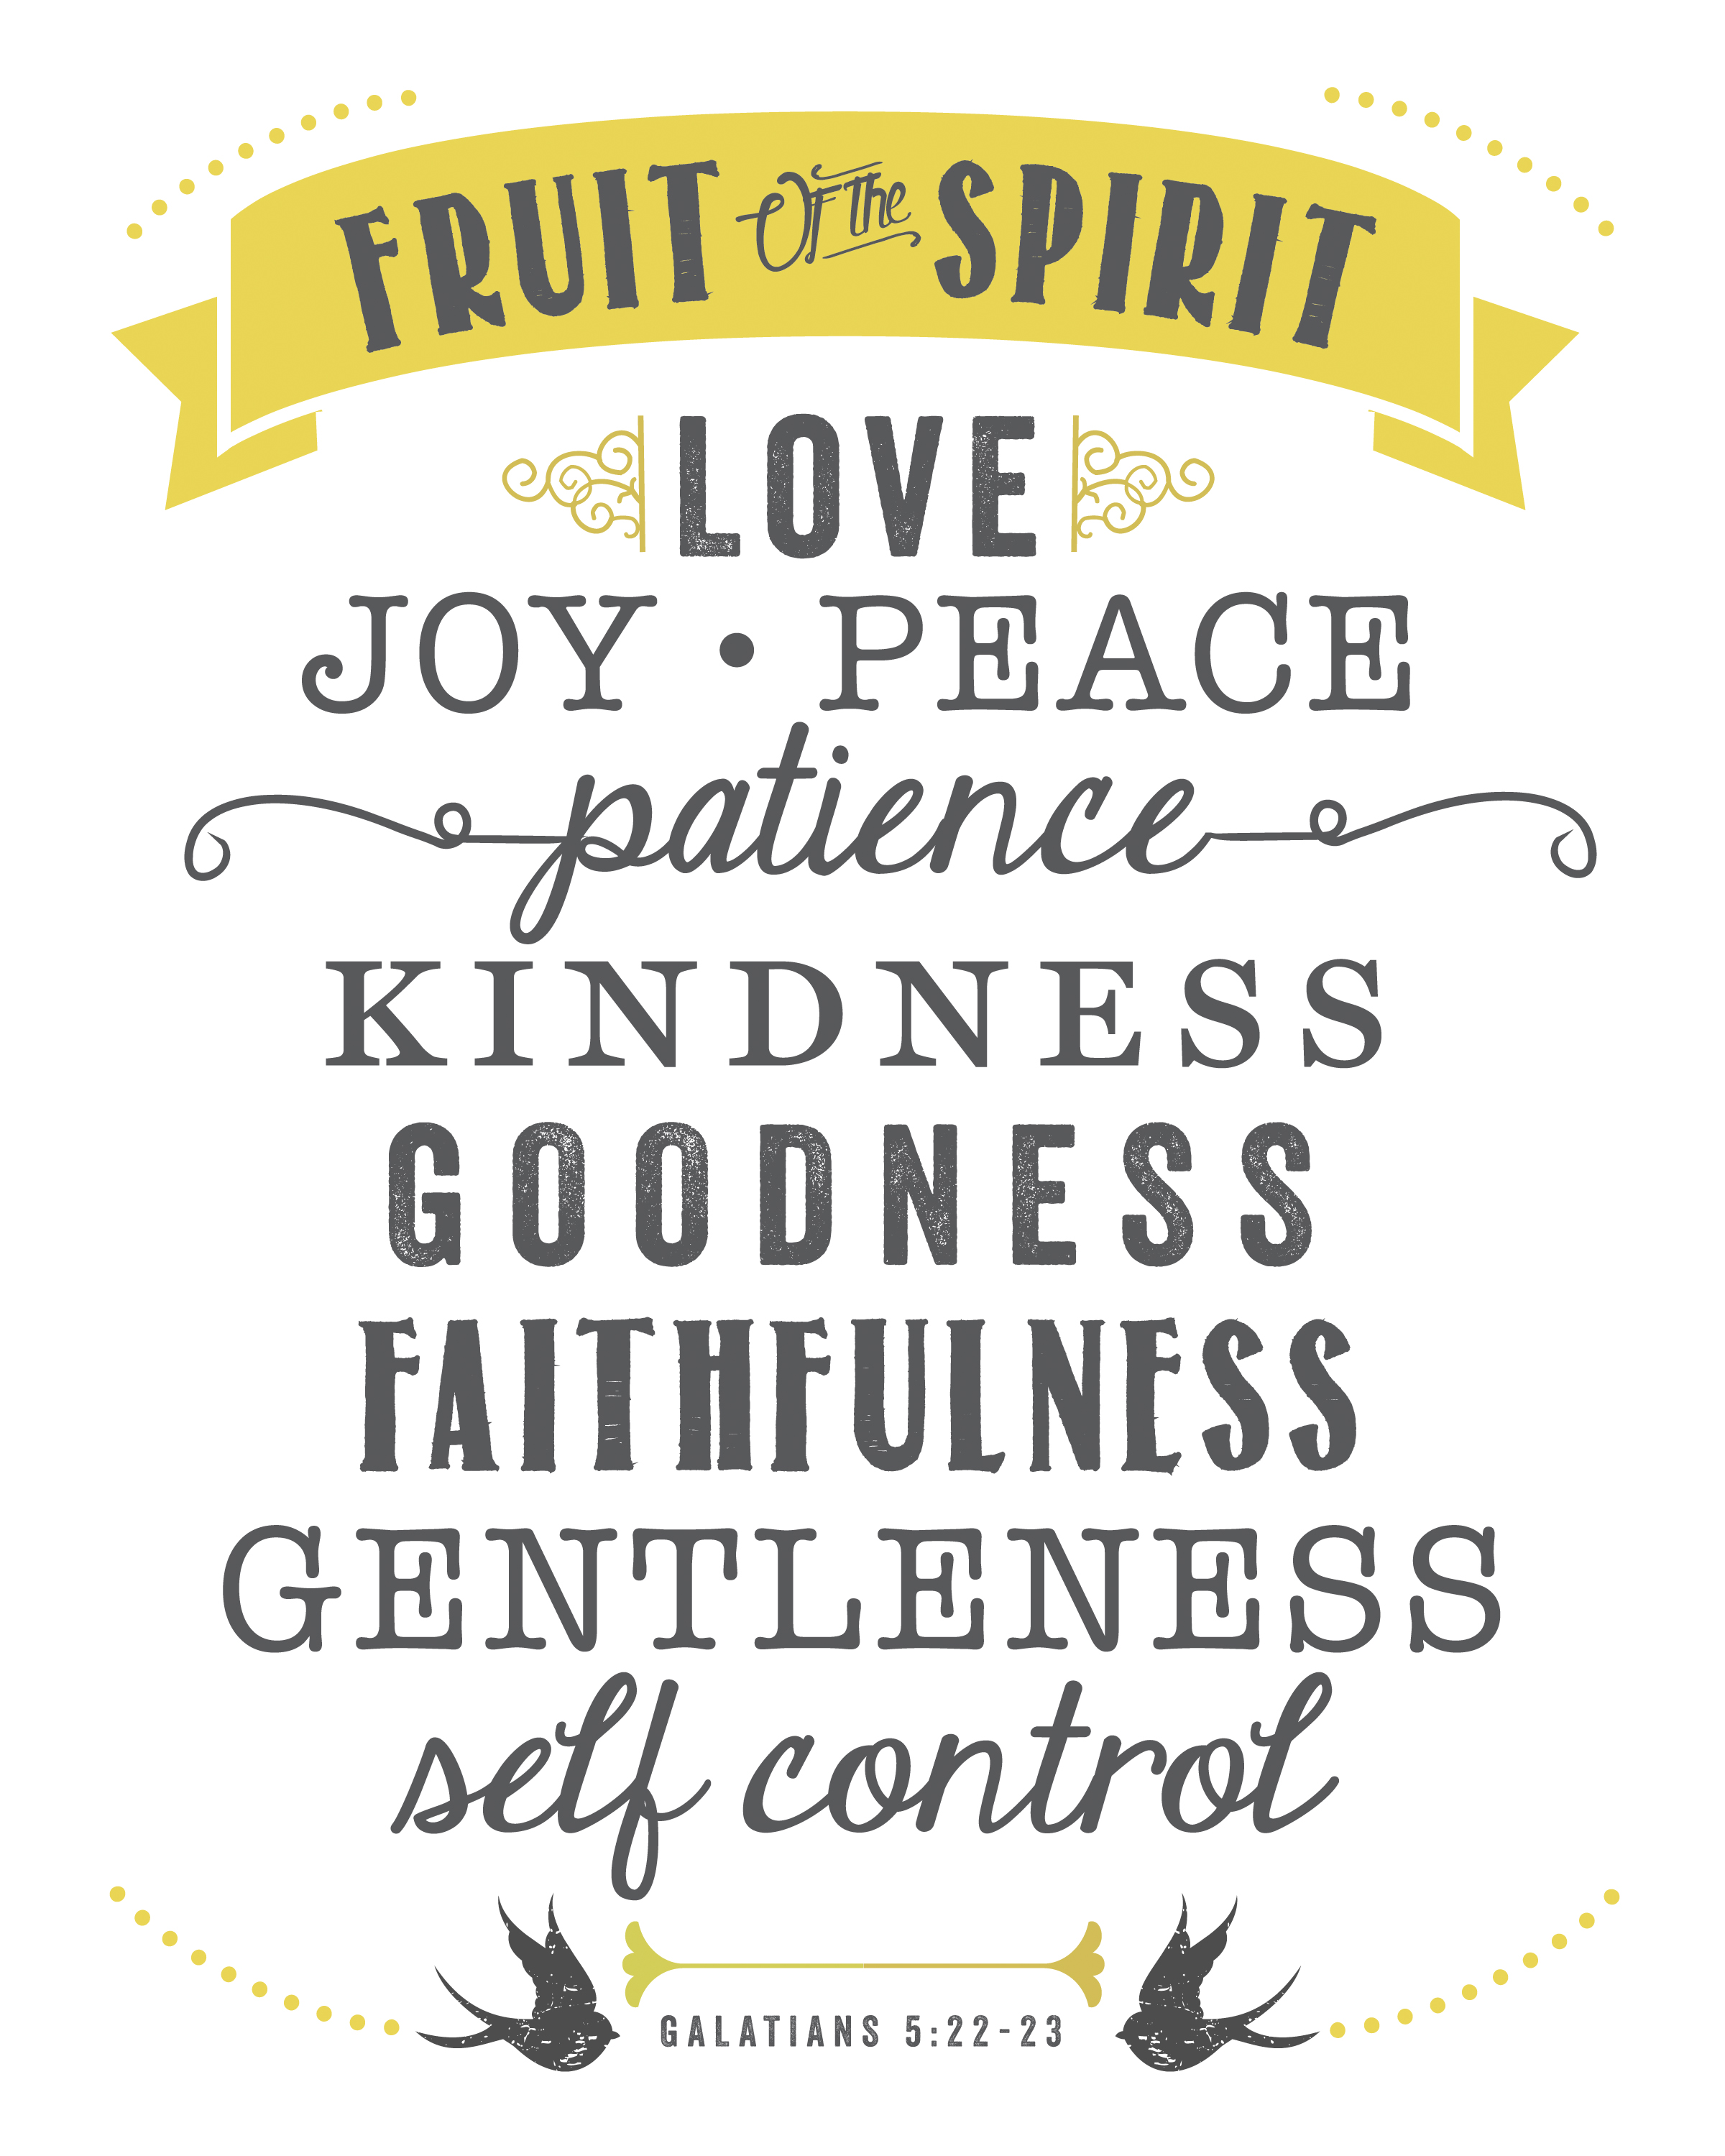 Witty image regarding fruits of the spirit printable